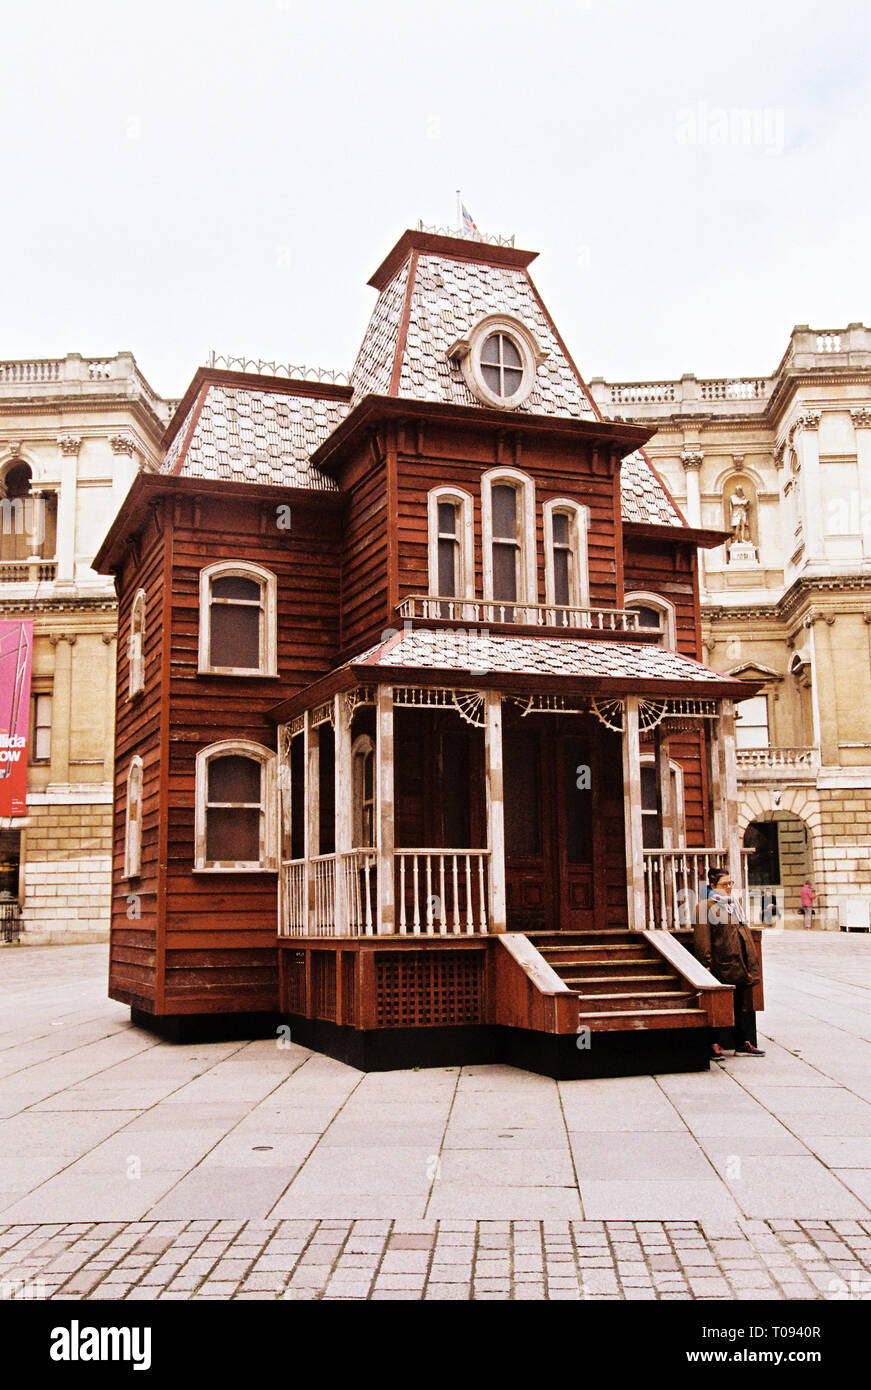 Cornelia Parker Transitional Object (PsychoBarn) a prop house installed in the courtyard at the Royal Academy of Art, London, England, United Kingdom. - Stock Image